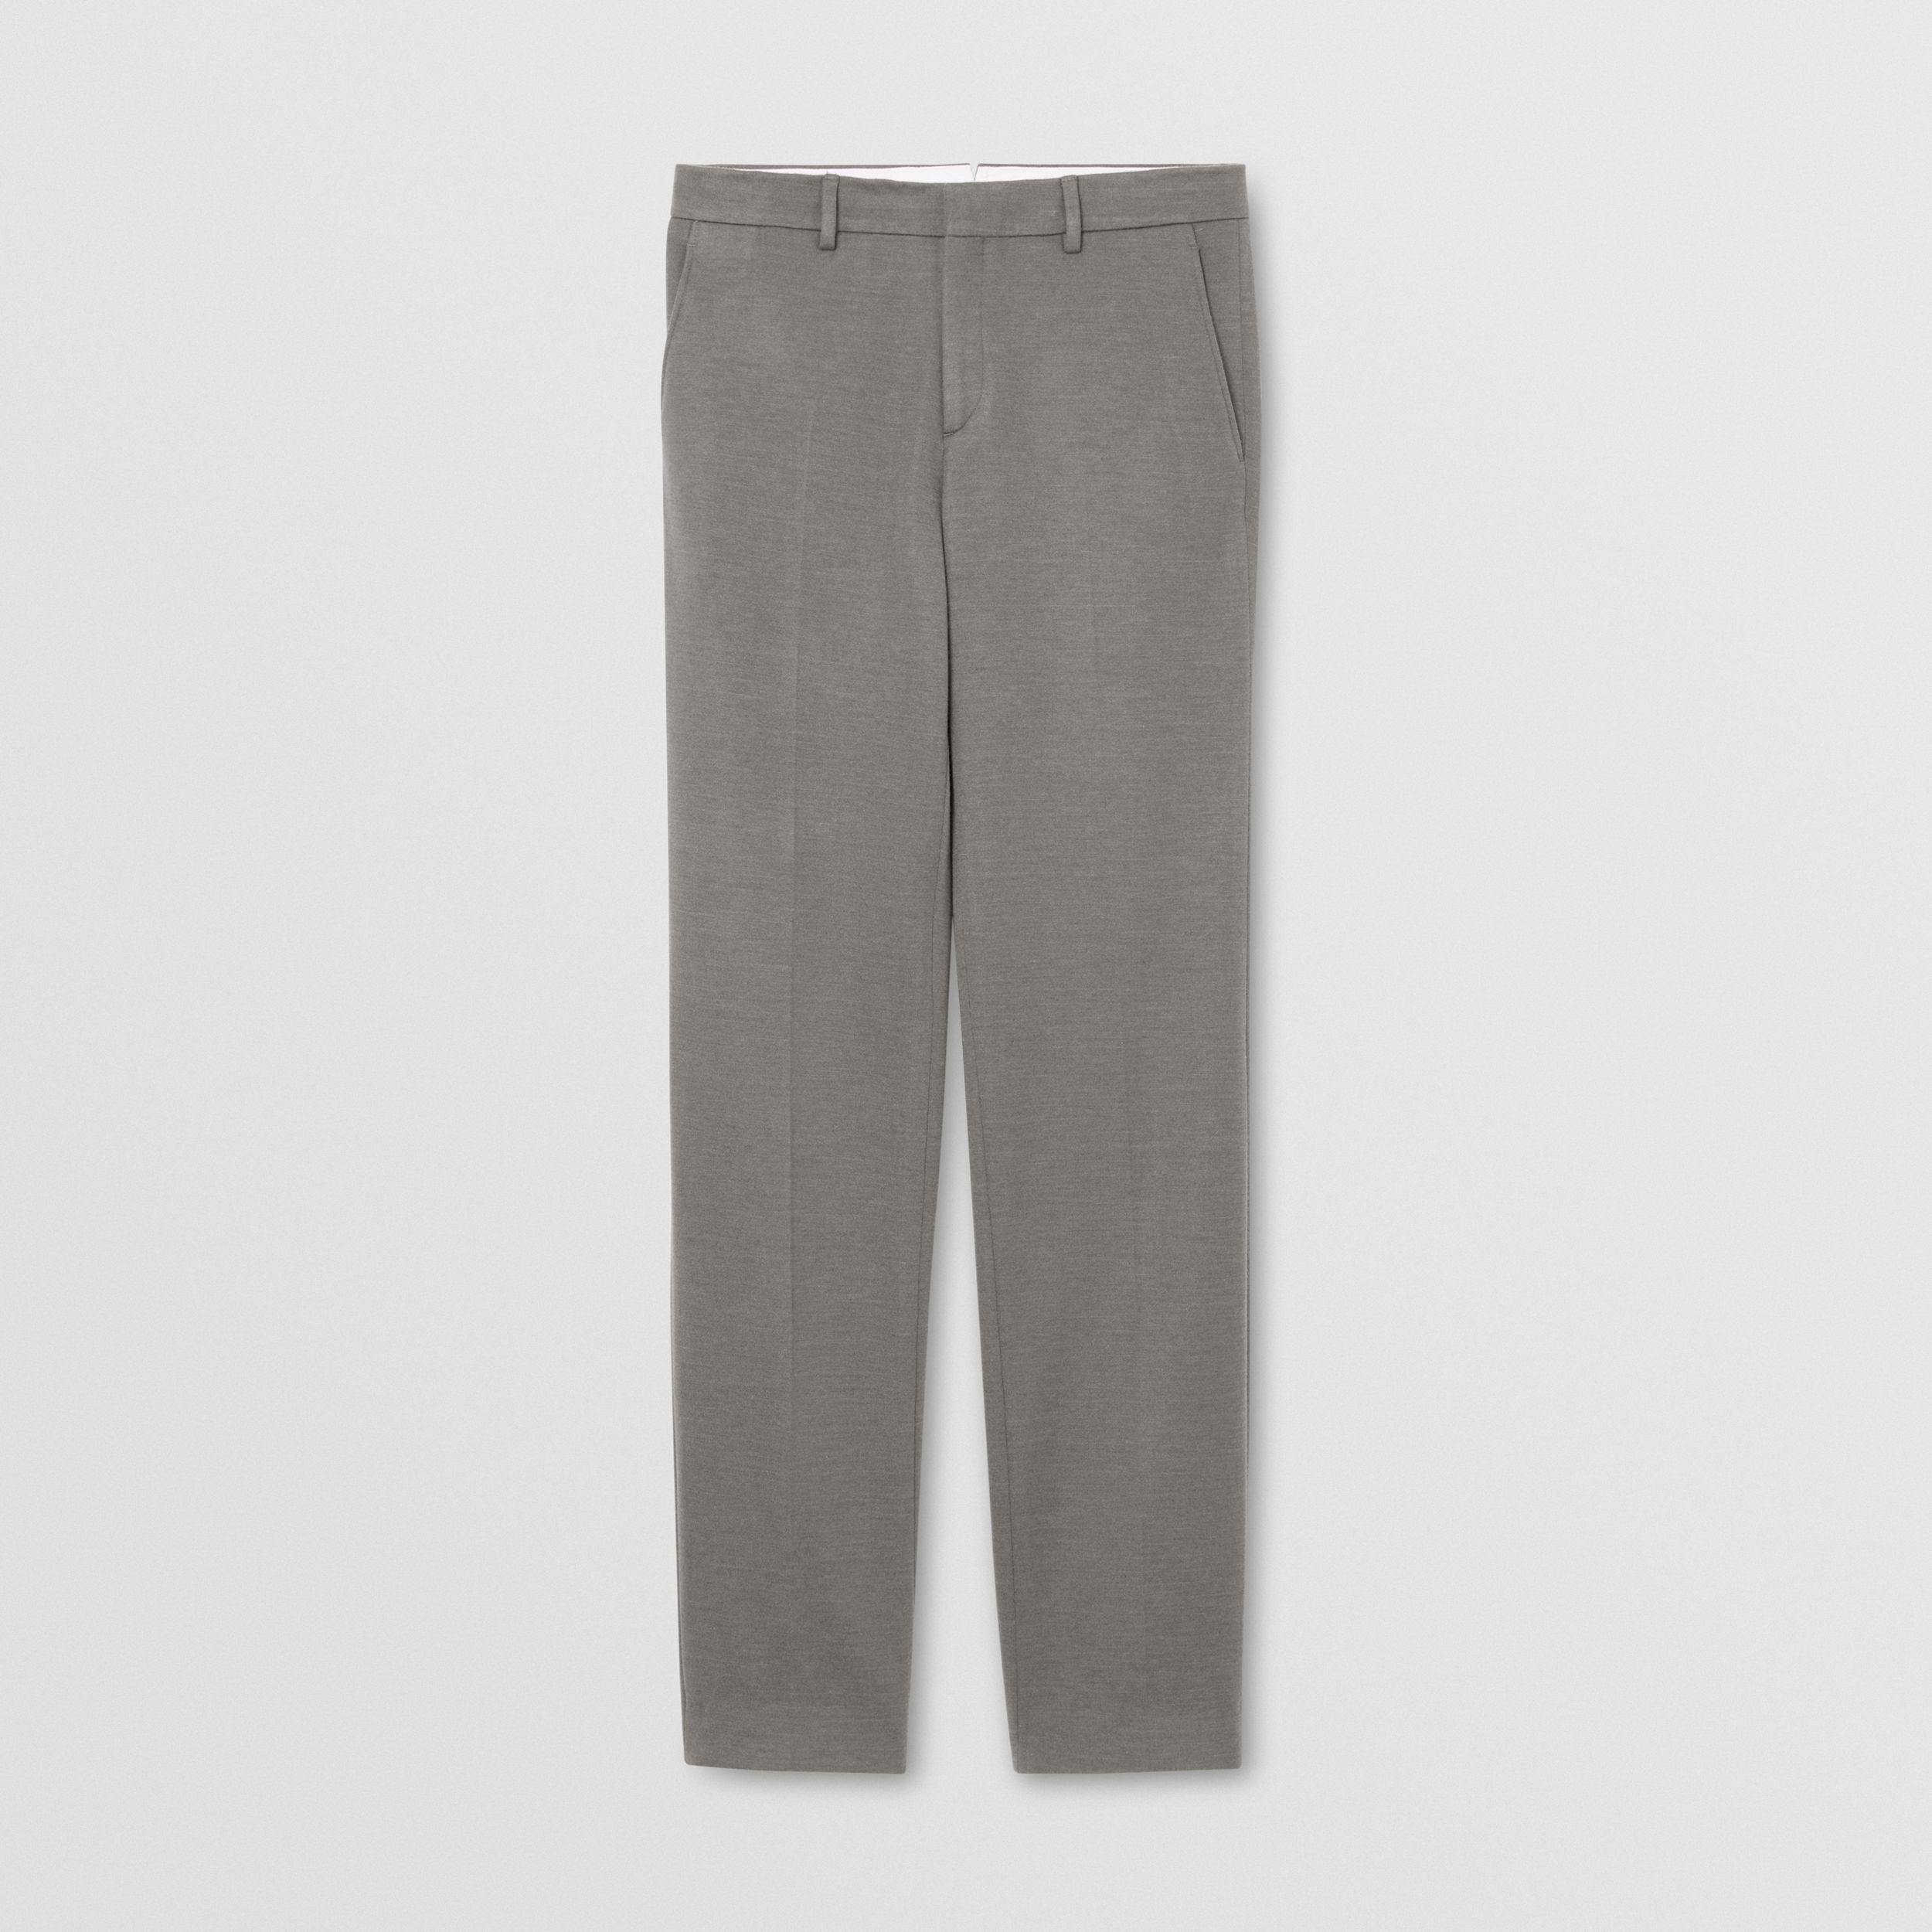 English Fit Cashmere Silk Jersey Tailored Trousers in Cloud Grey - Men | Burberry Australia - 4